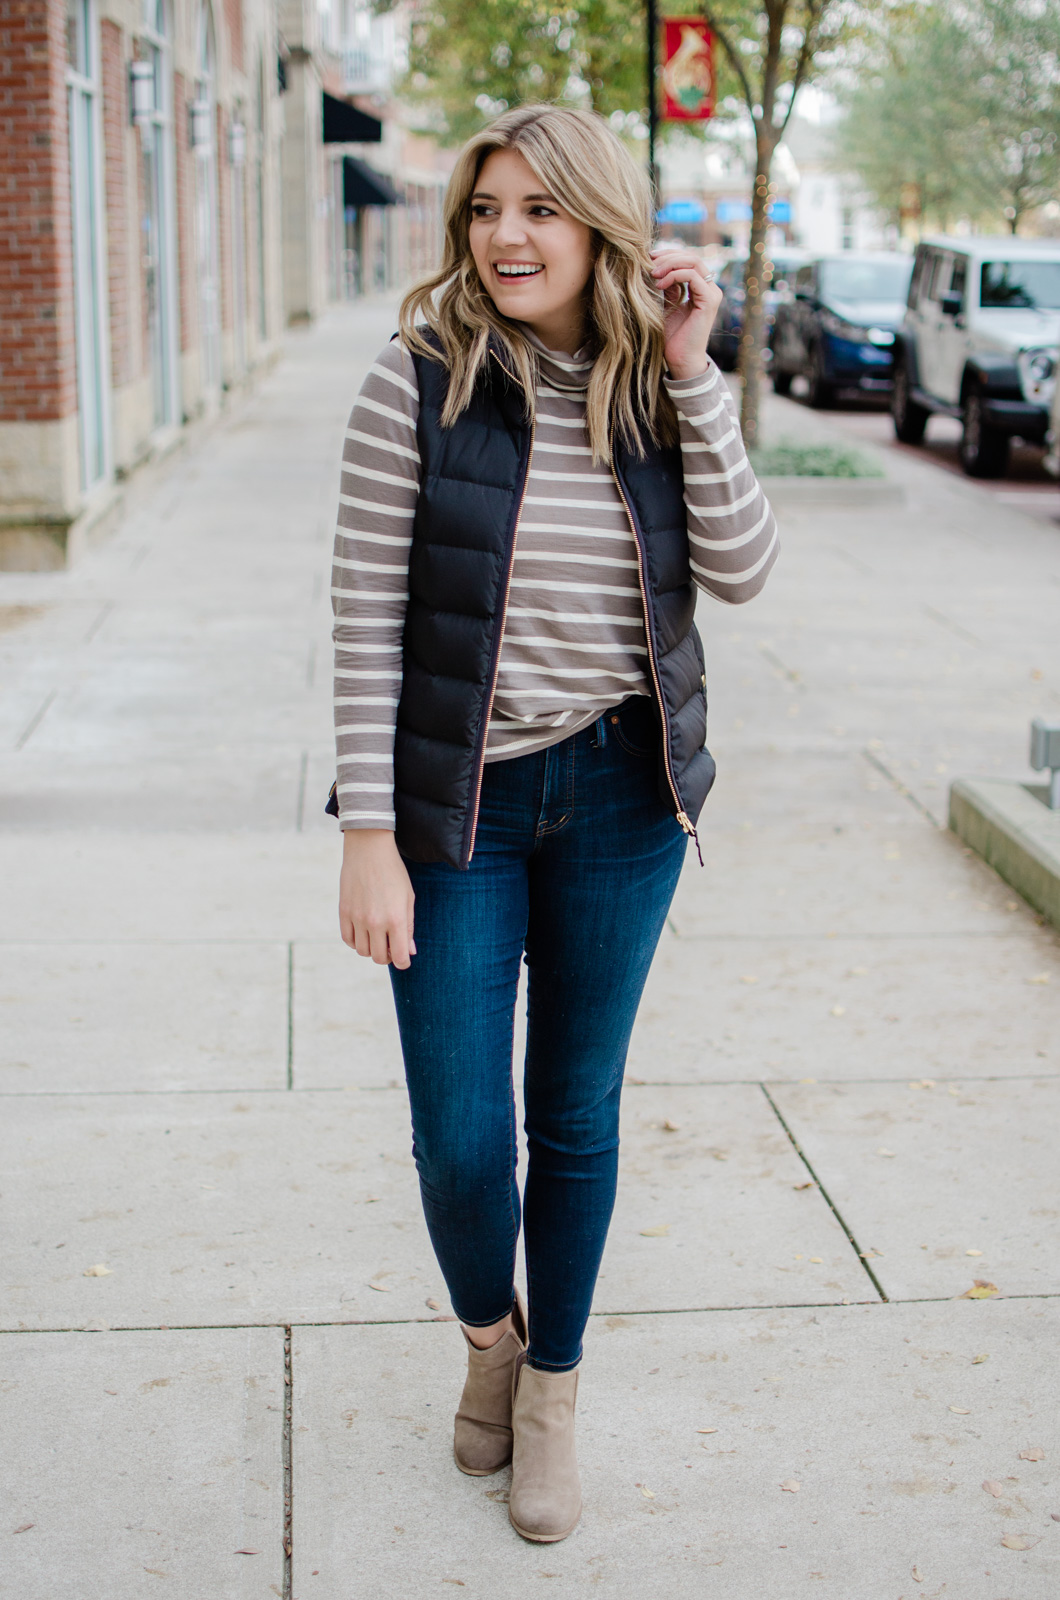 six puffer vest outfits - head to the blog to see all the ideas and get details of this stripe turtleneck look! bylaurenm.com